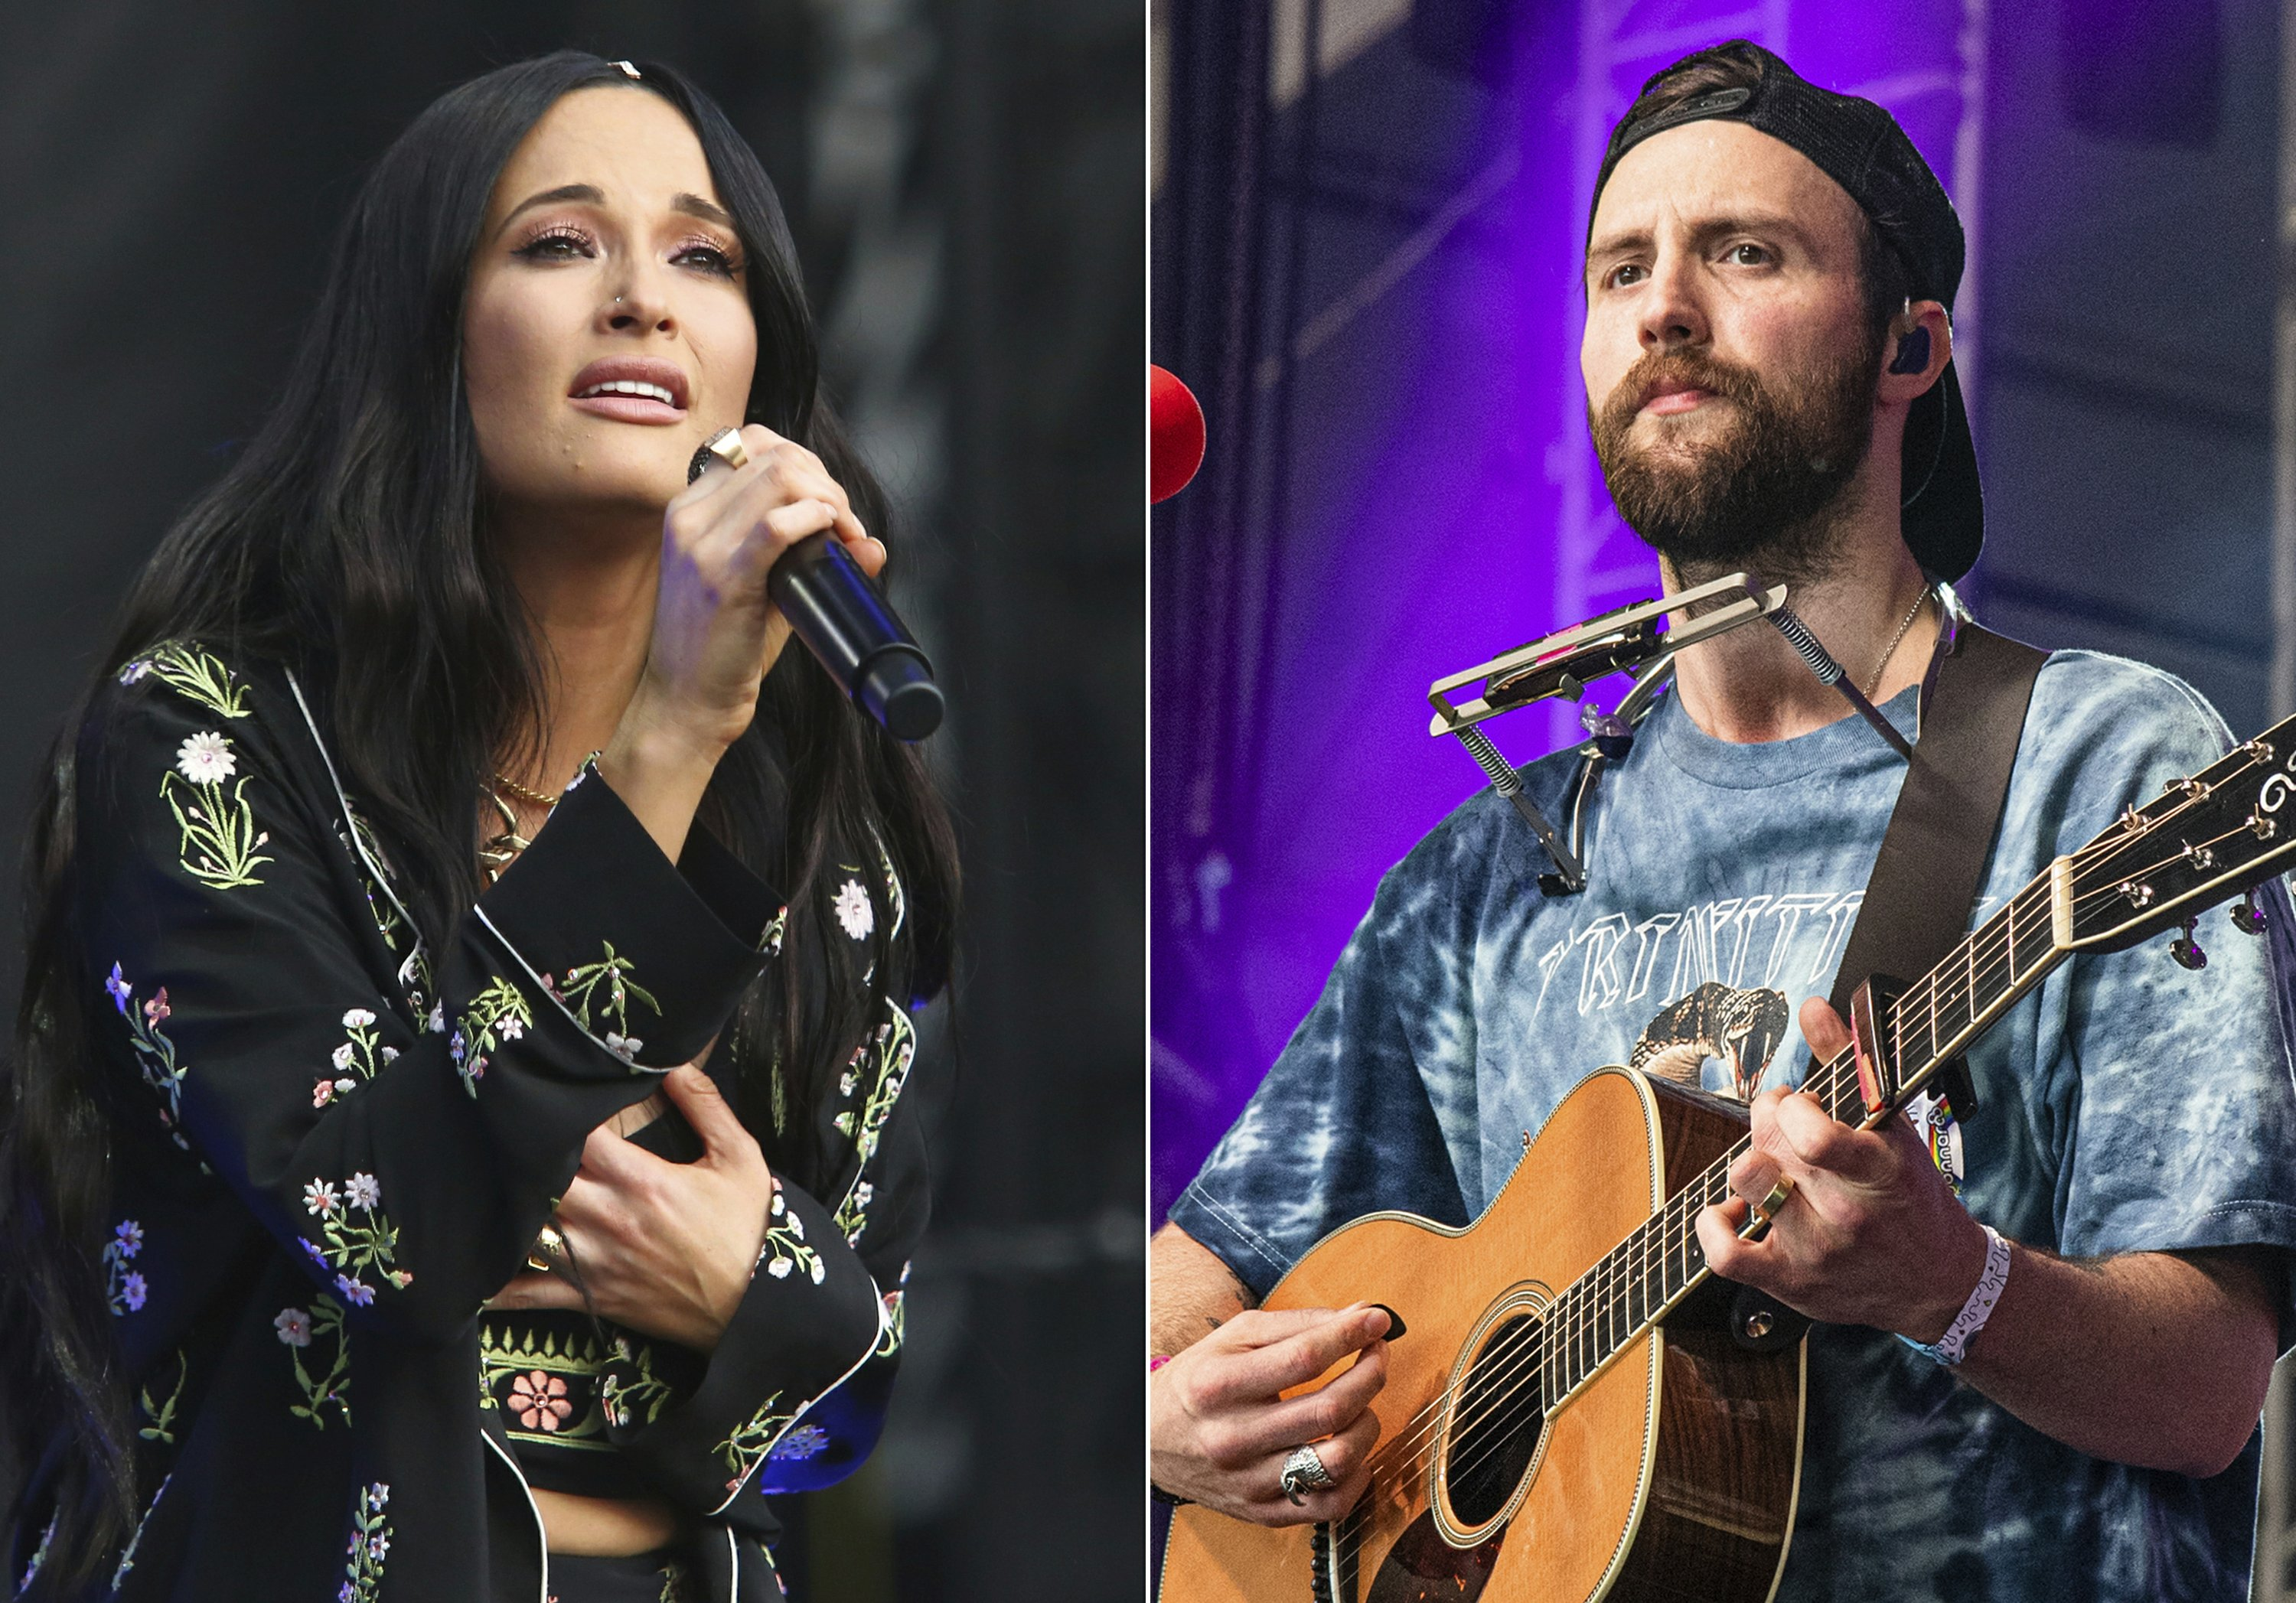 Reps: Singers Kacey Musgraves, Ruston Kelly file for divorce - The Associated Press